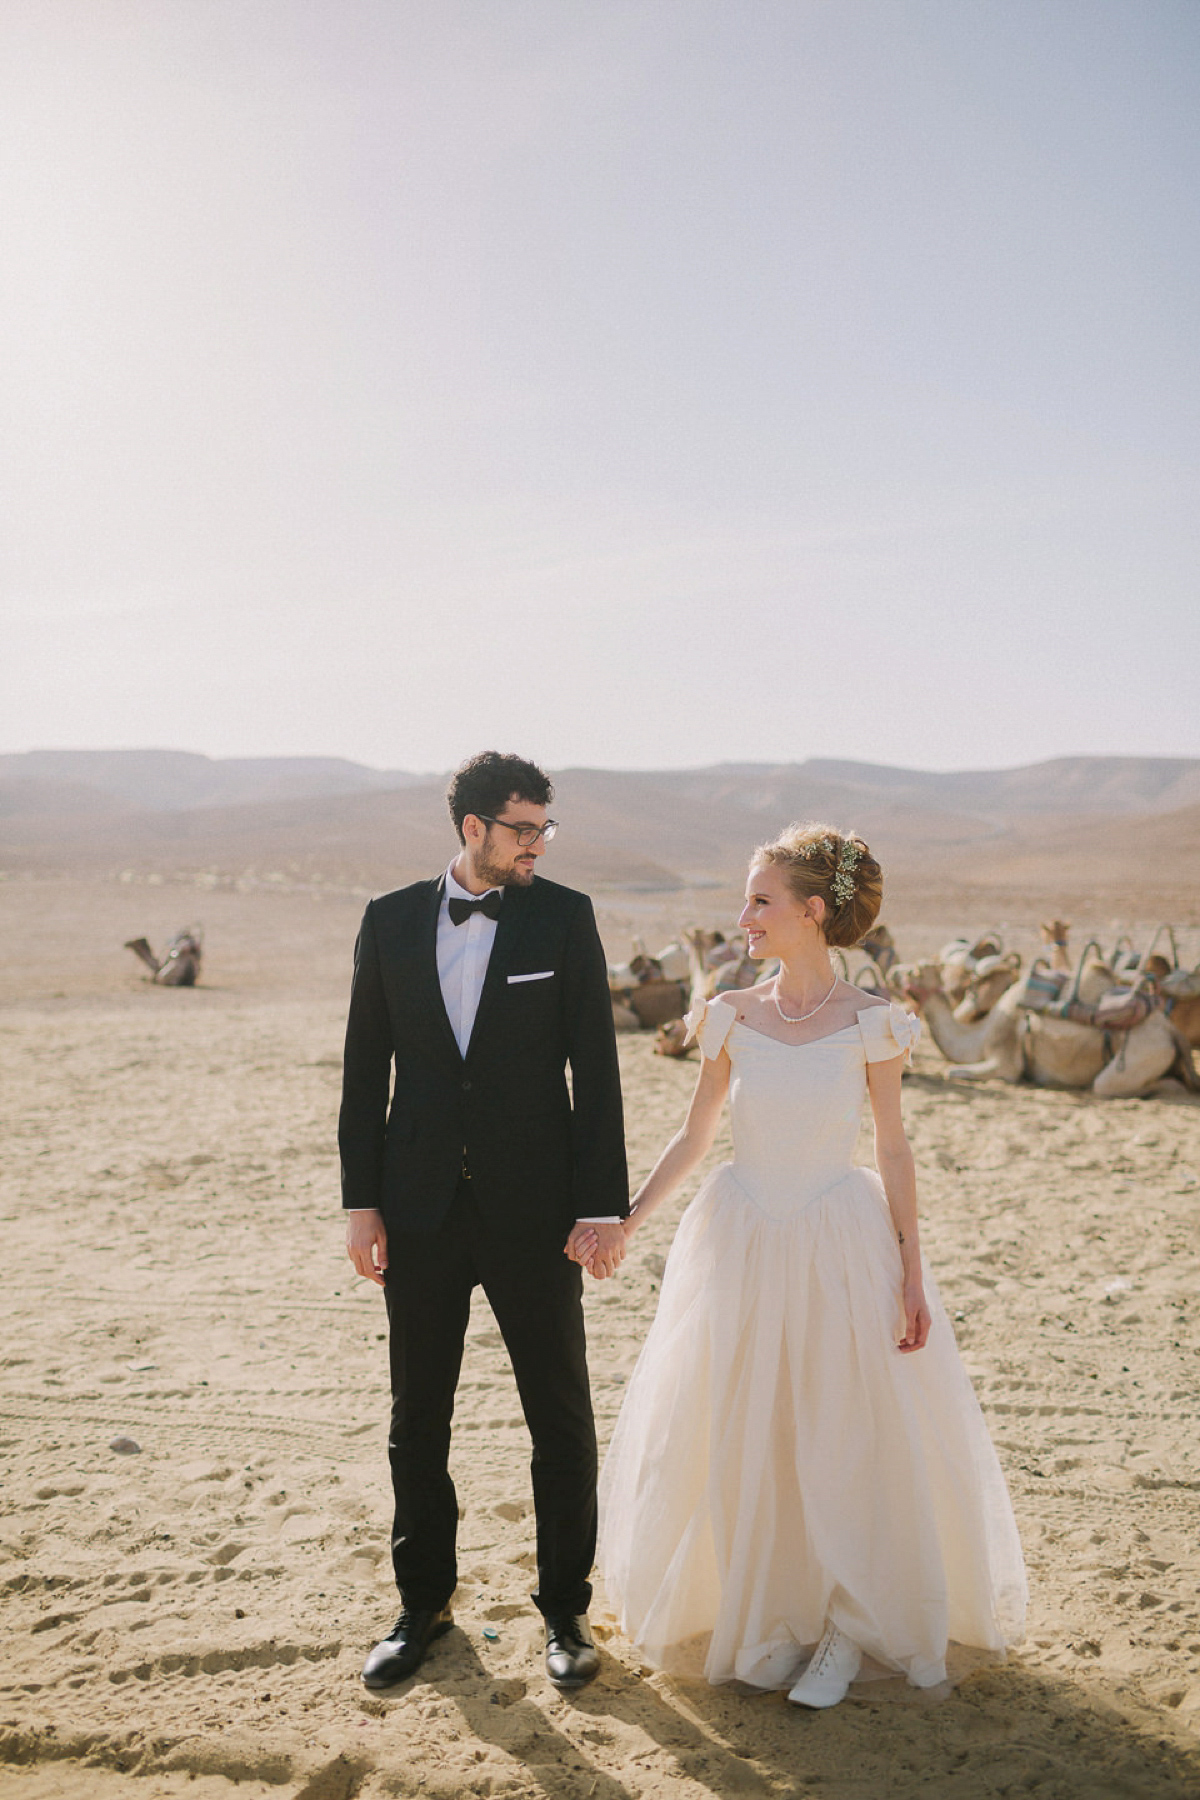 A Vintage Dress and and Laceup Boots for a Jewish Ceremony and Modern Festival Wedding in the Desert